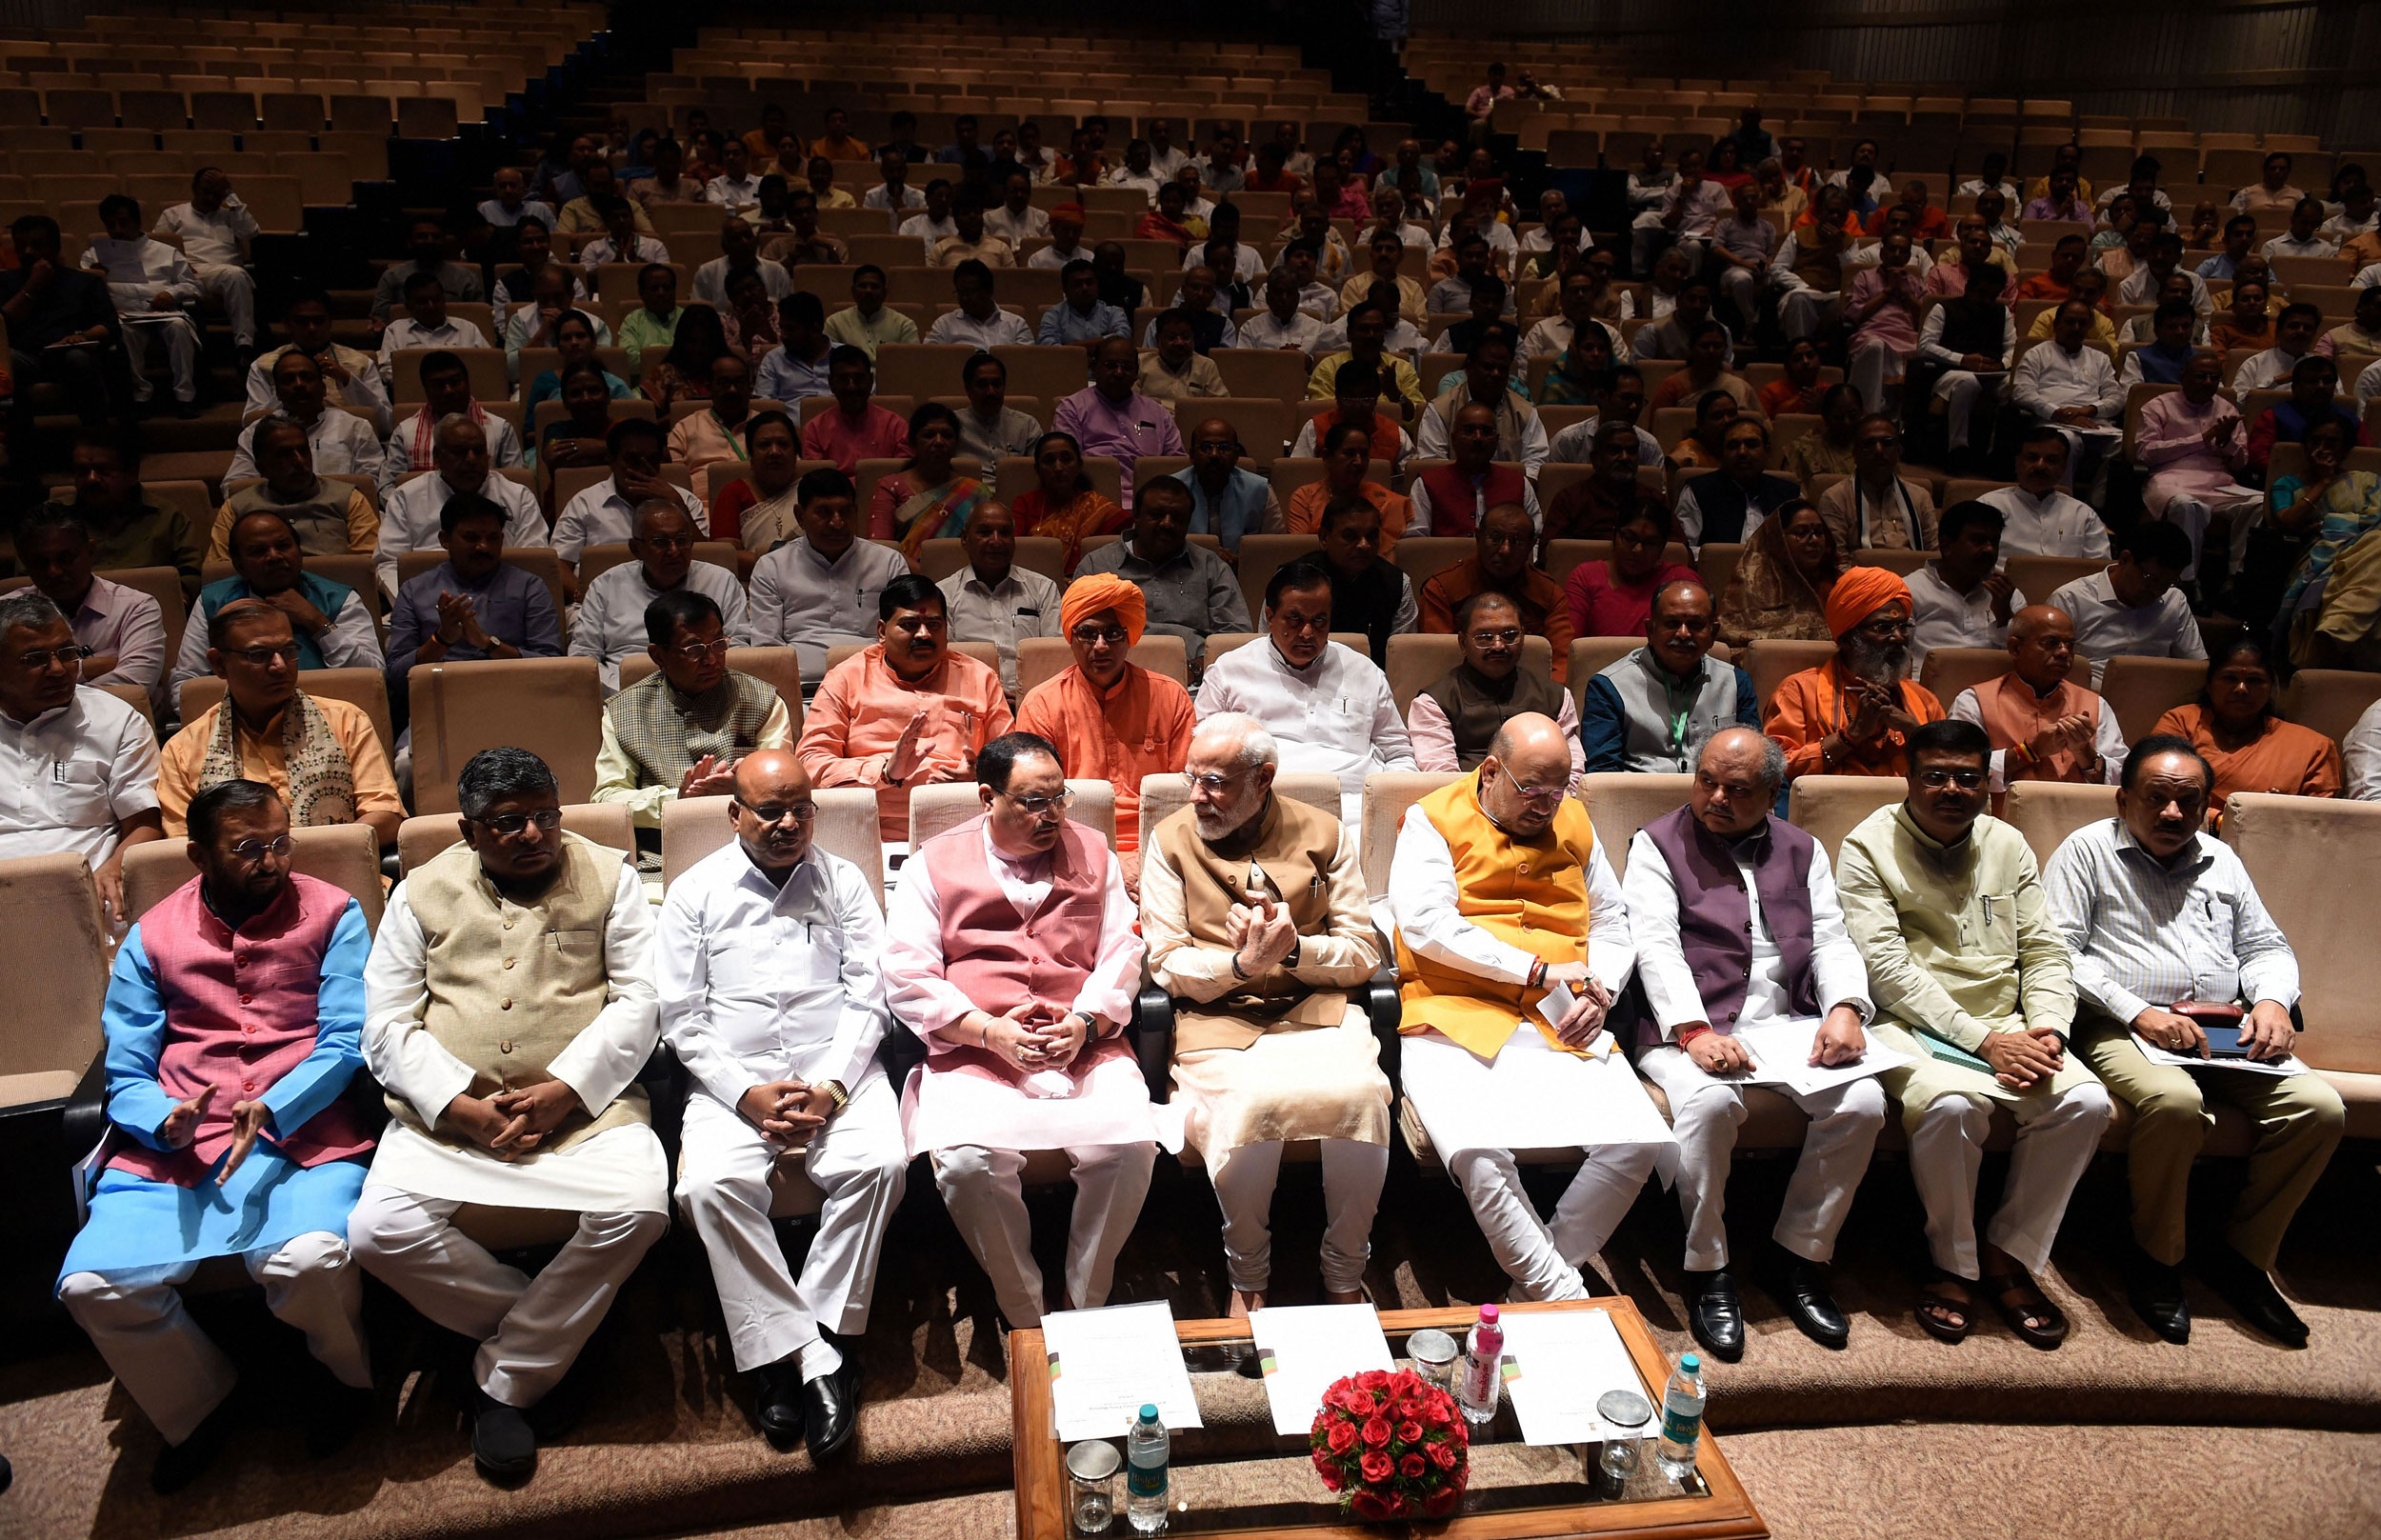 Narendra Modi, Amit Shah, J.P. Nadda, among others, attend a BJP parliamentary meeting at Parliament house in New Delhi on 30, 2019. On liabilities, the BJP is a far second, at Rs 21.38 crore.